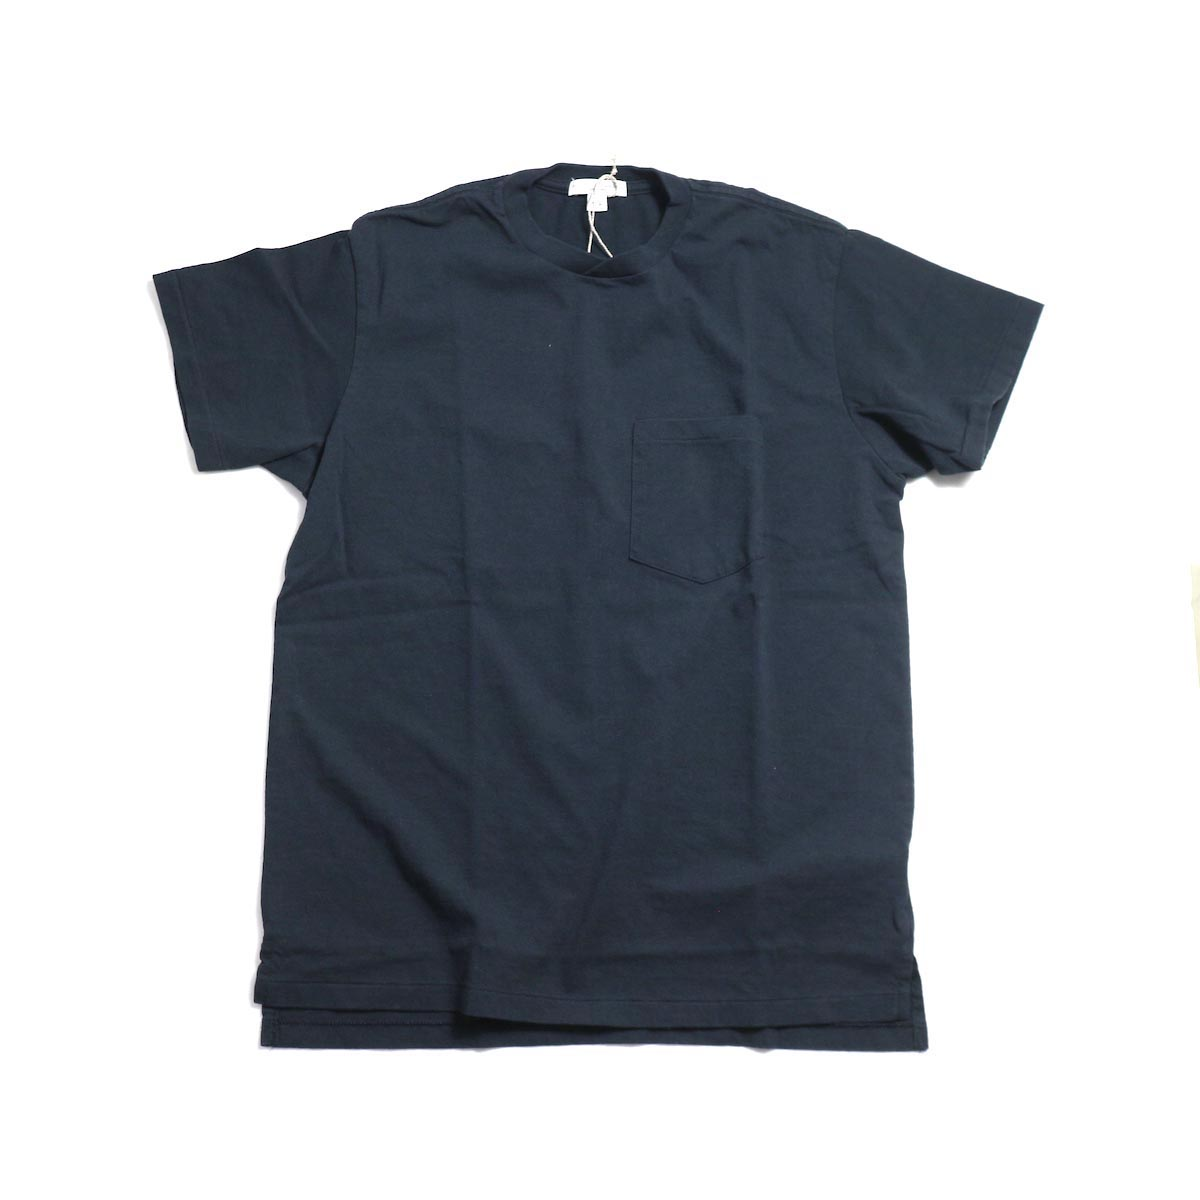 ENGINEERED GARMENTS Workaday / Crossover Neck Pocket Tee -Navy